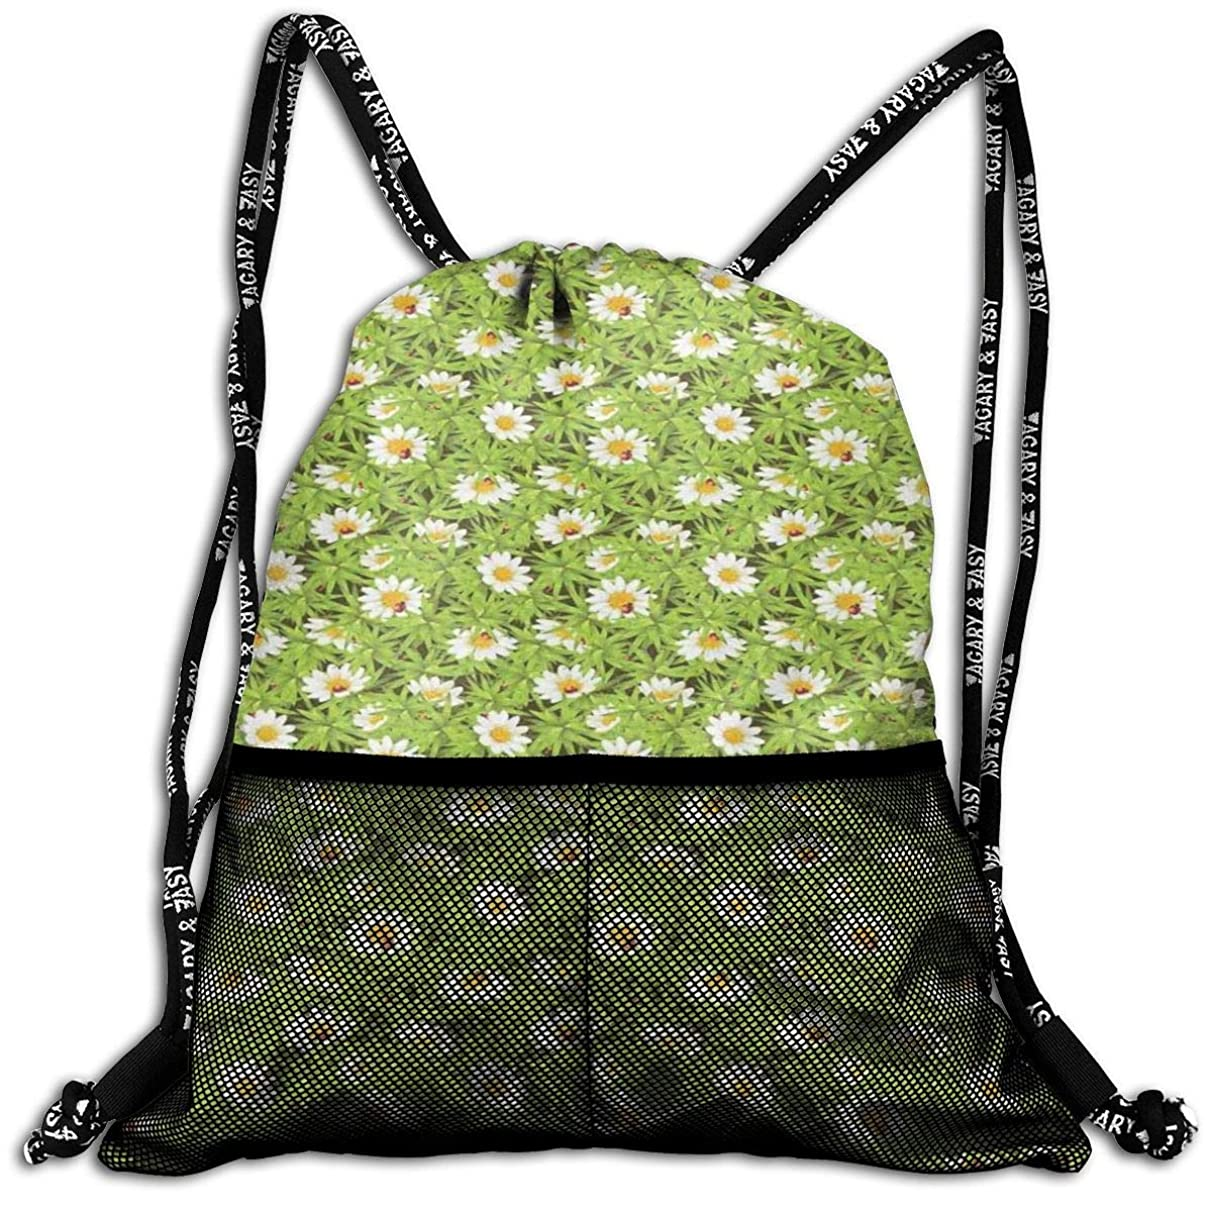 Drawstring Backpacks Bags,Chamomiles And Ladybugs In Spring Season Blooming Flowers And Wildlife,5 Liter Capacity,Adjustable